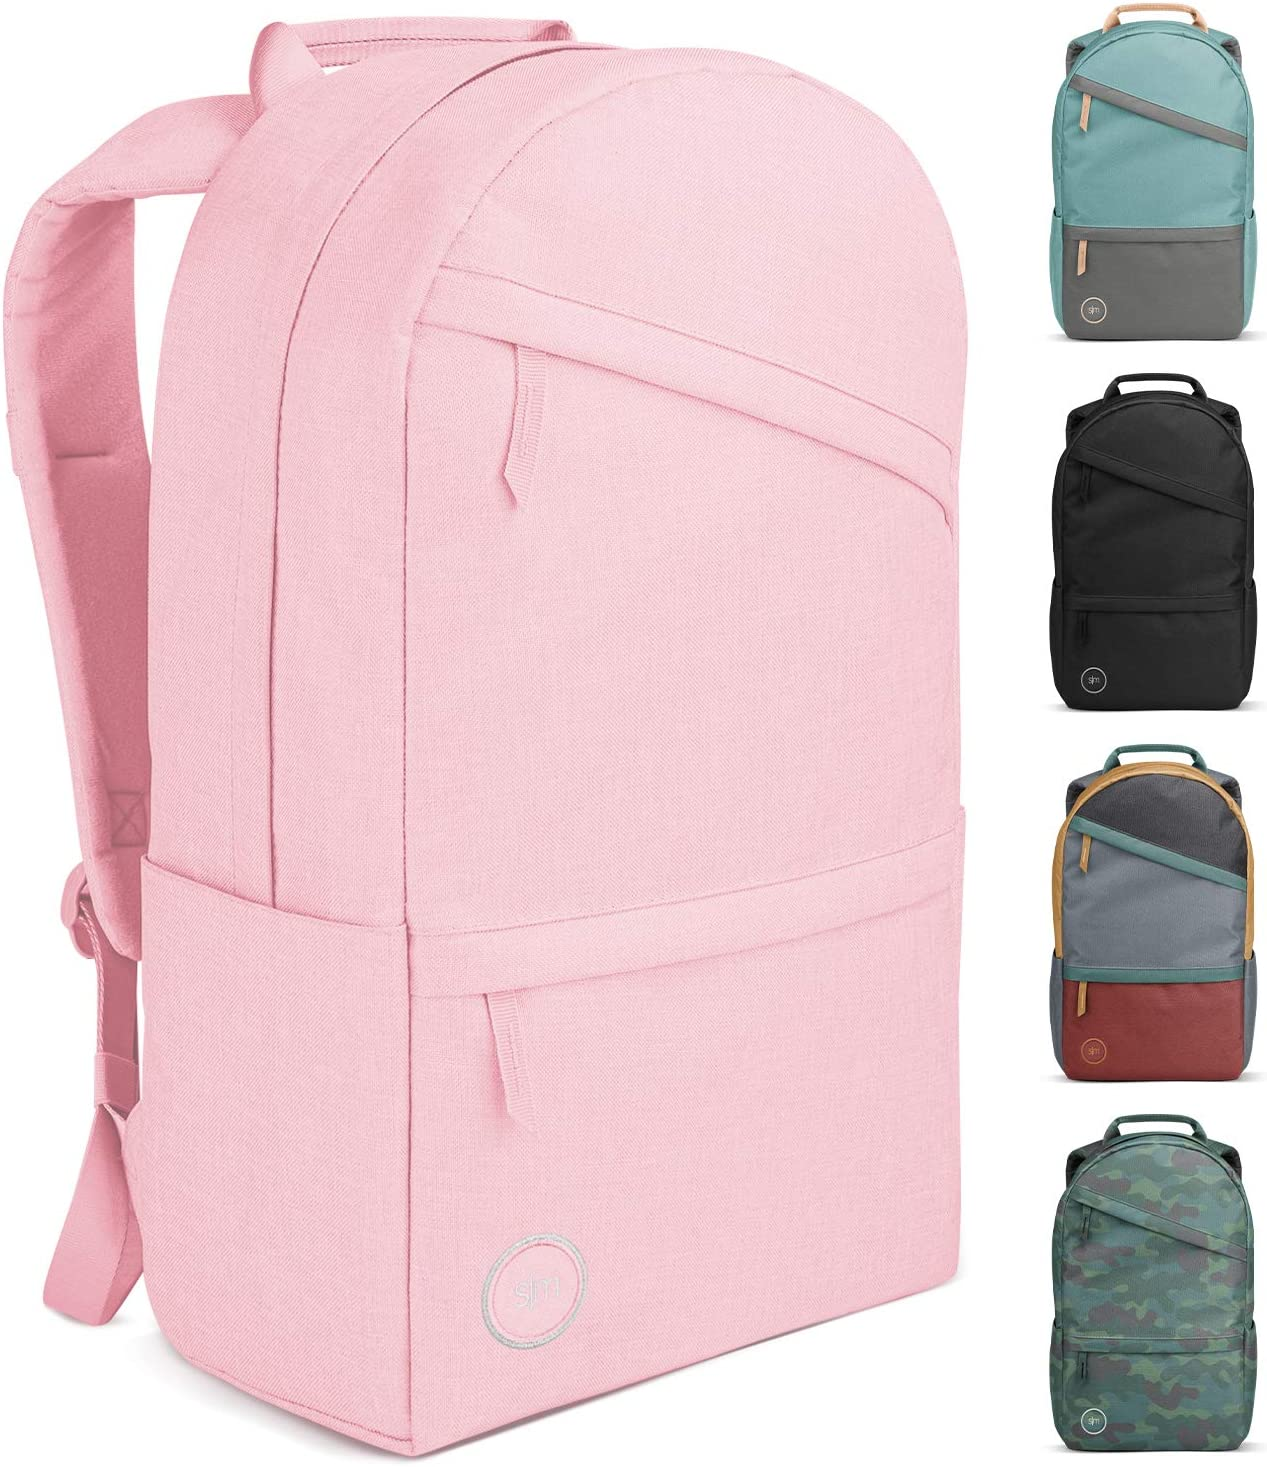 Simple Modern Legacy Backpack with Laptop Compartment Sleeve - 25L Travel Bag for Men & Women College Work School -Blush